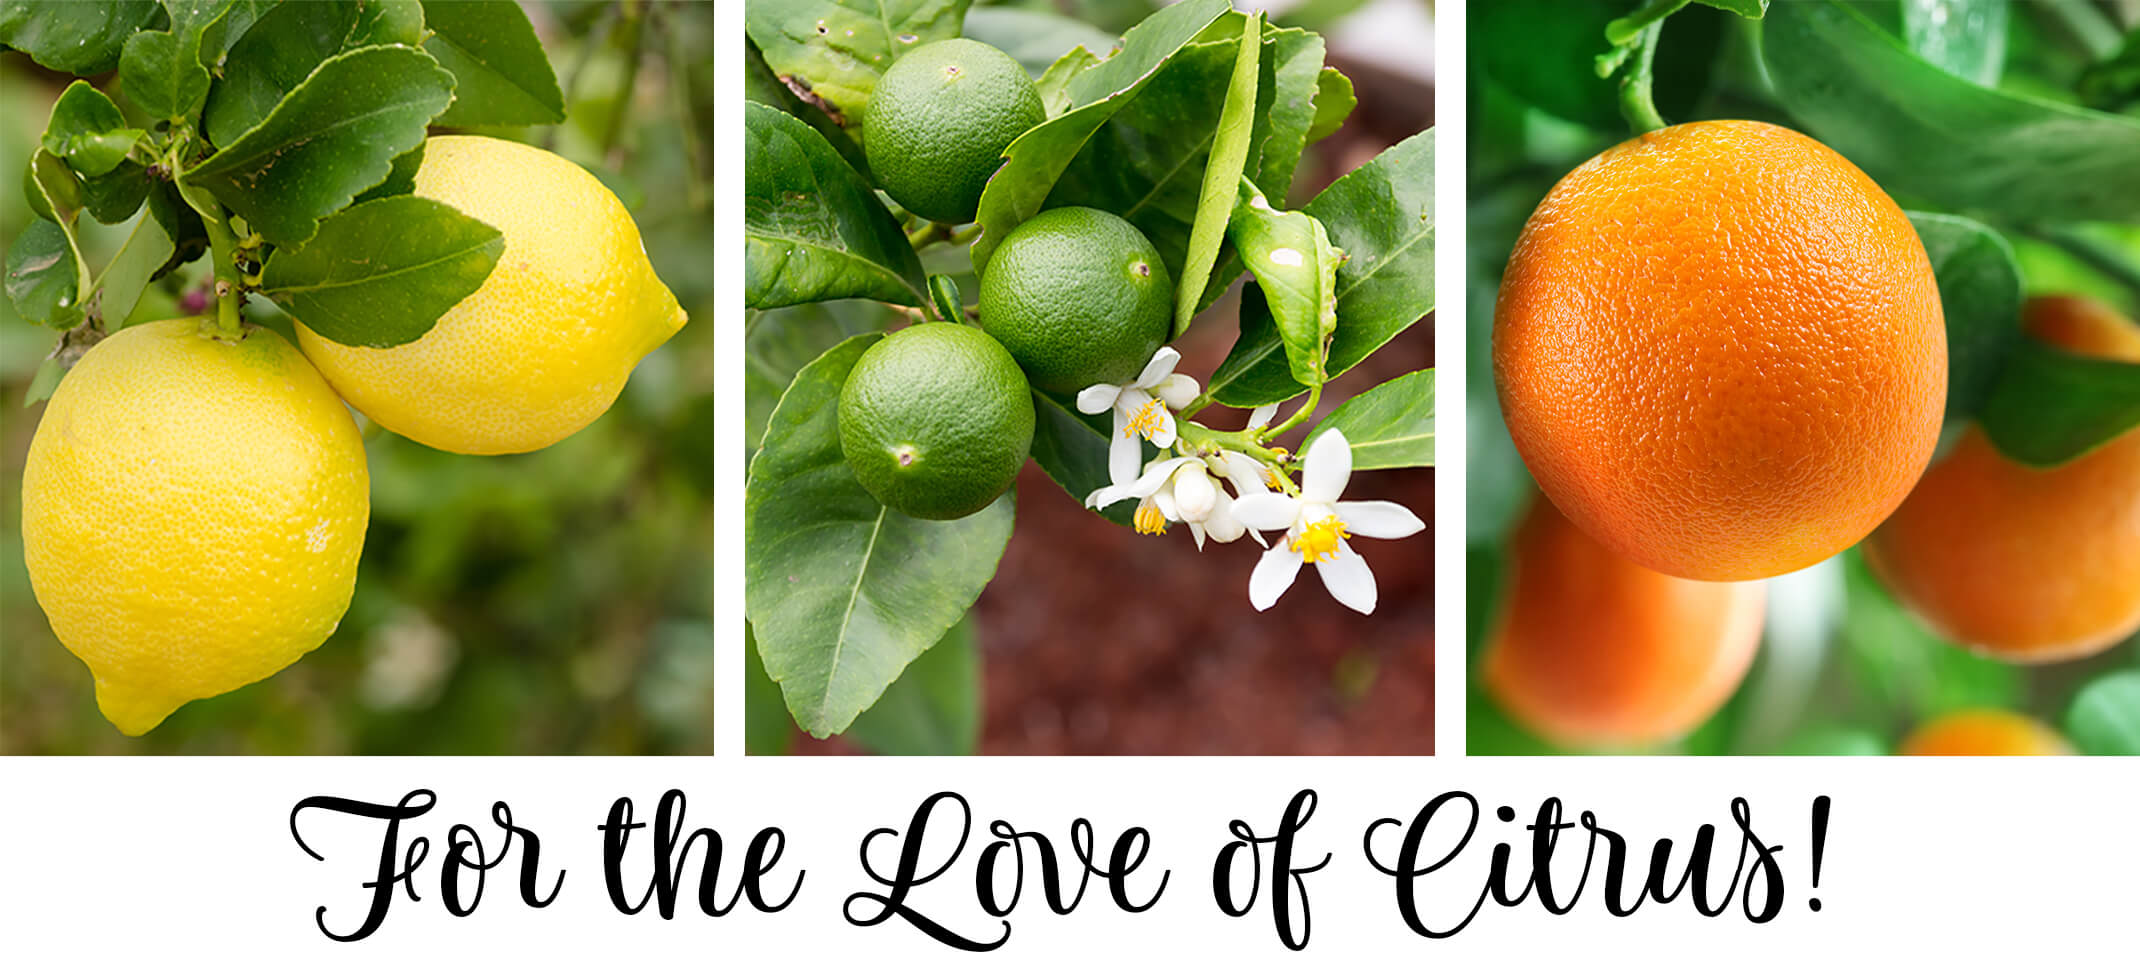 Text: For the Love of Citrus with 3 image closeups: lemons, limes with flowers, and oranges each on trees